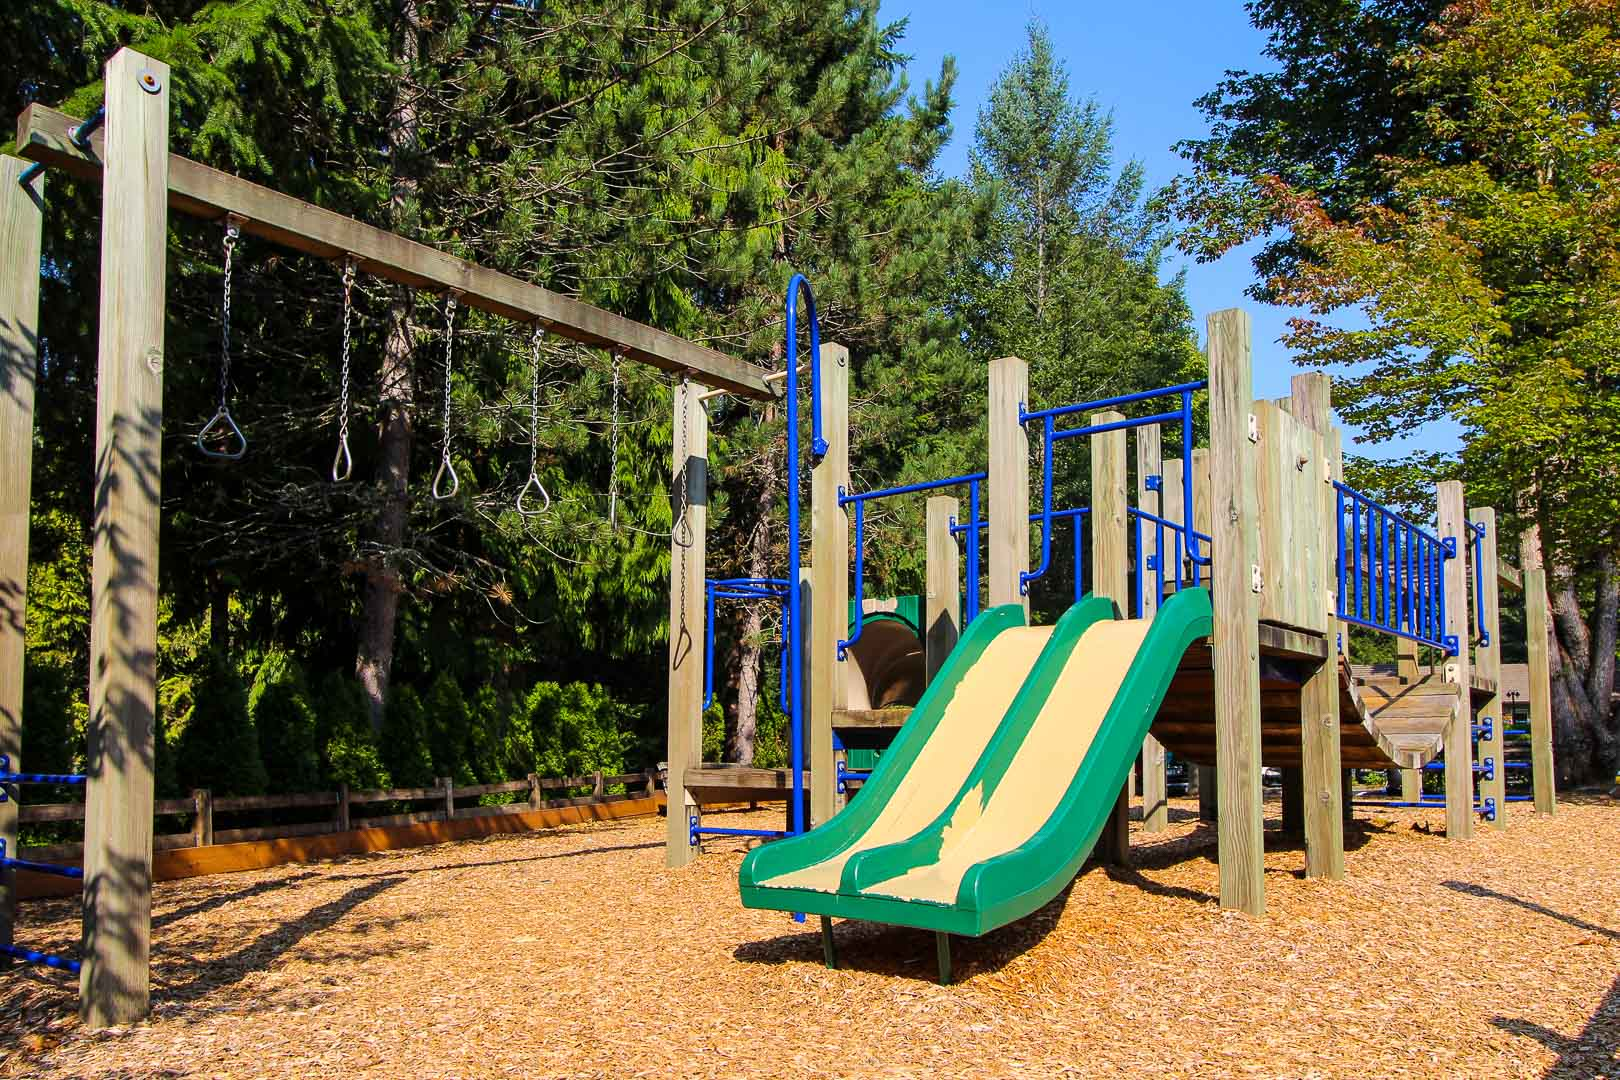 An enjoyable playground at VRI's Whispering Woods Resort in Oregon.